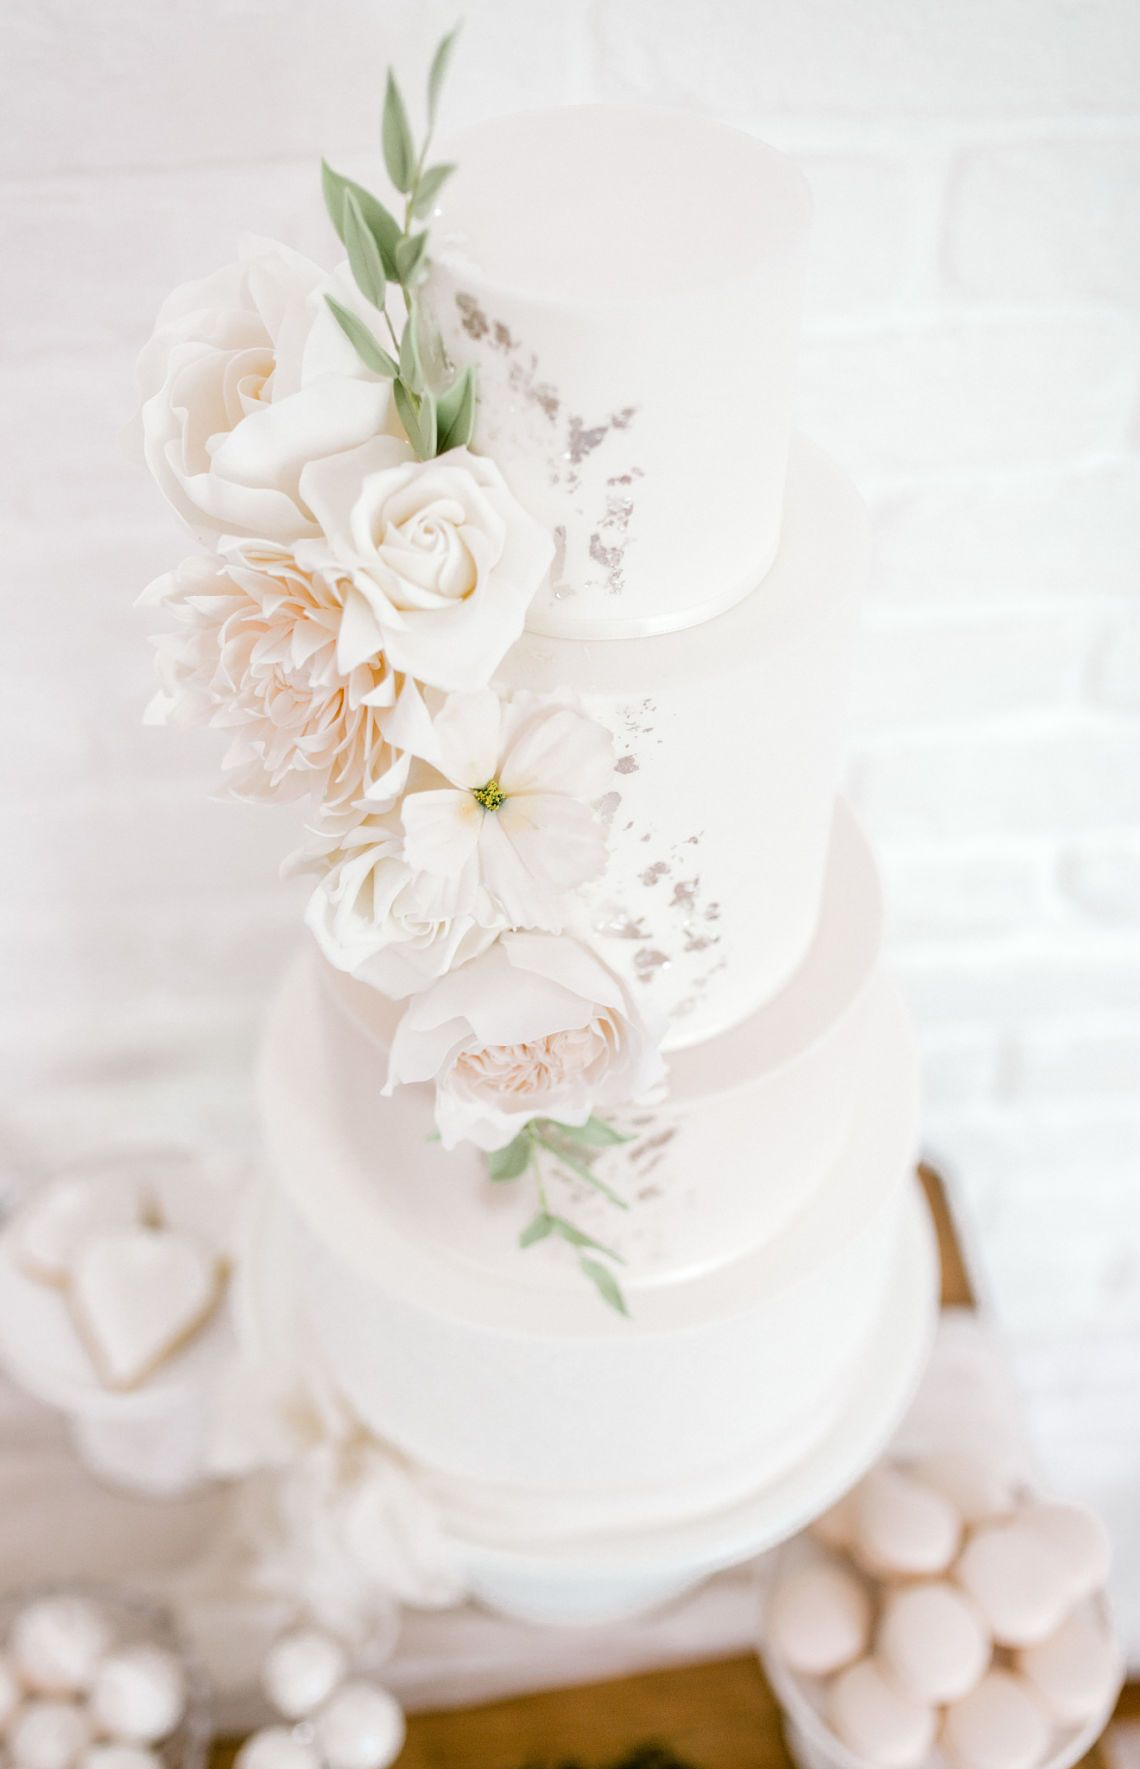 Absolutely In Love With The Recent Blog From Blovedblog Stunning Inspiration For A Romantic Romantic Wedding Inspiration Wedding Cake Inspiration Wedding